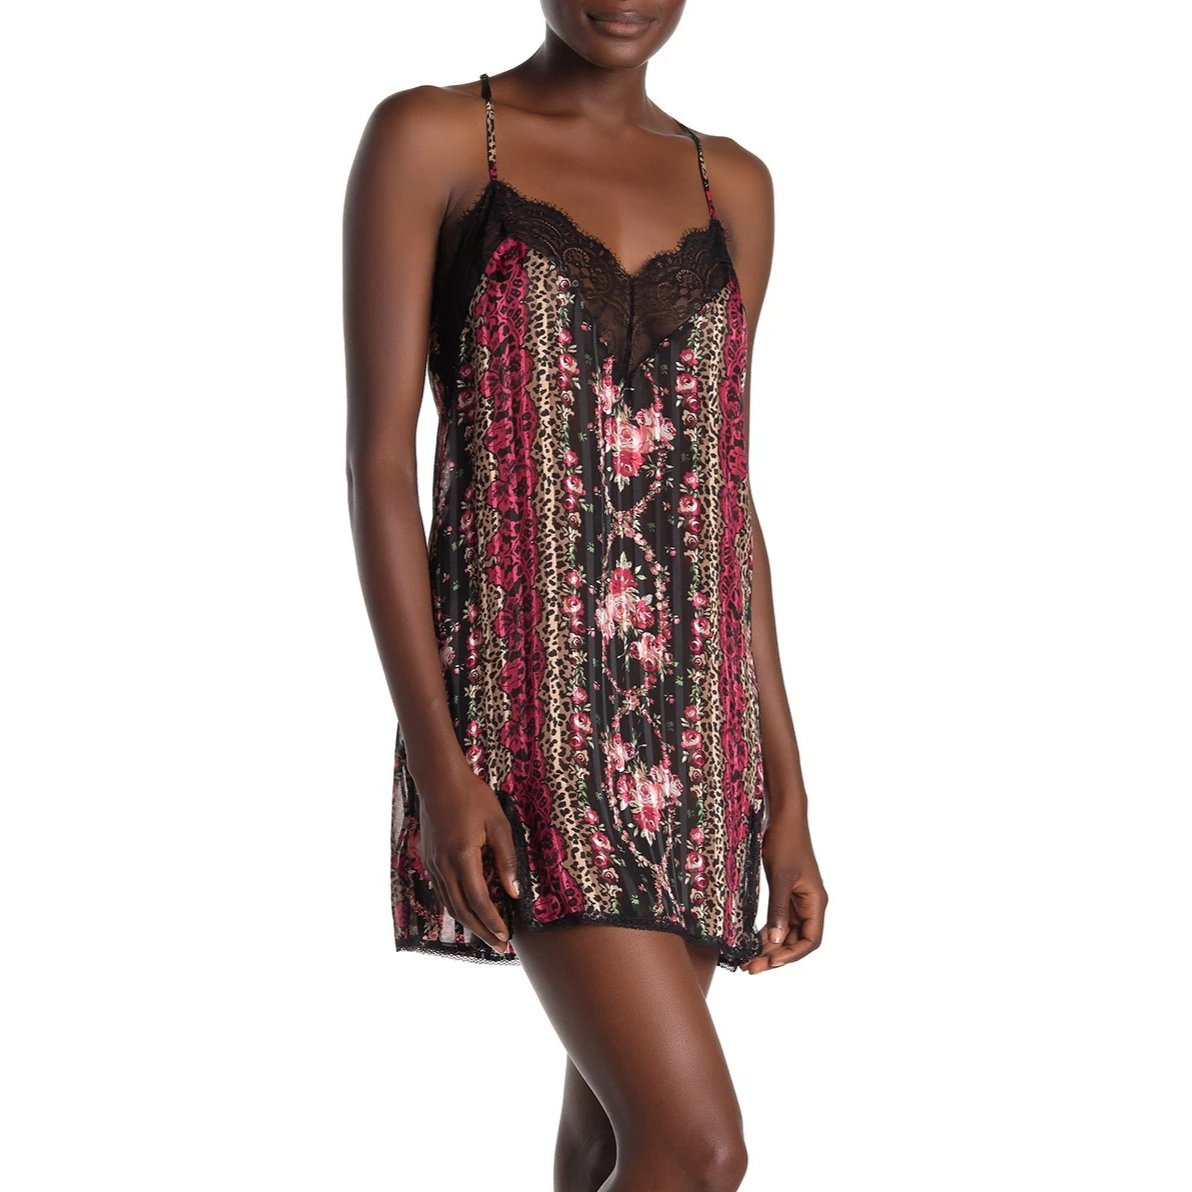 RCR110 Sheer Floral and Leopard Print Chemise